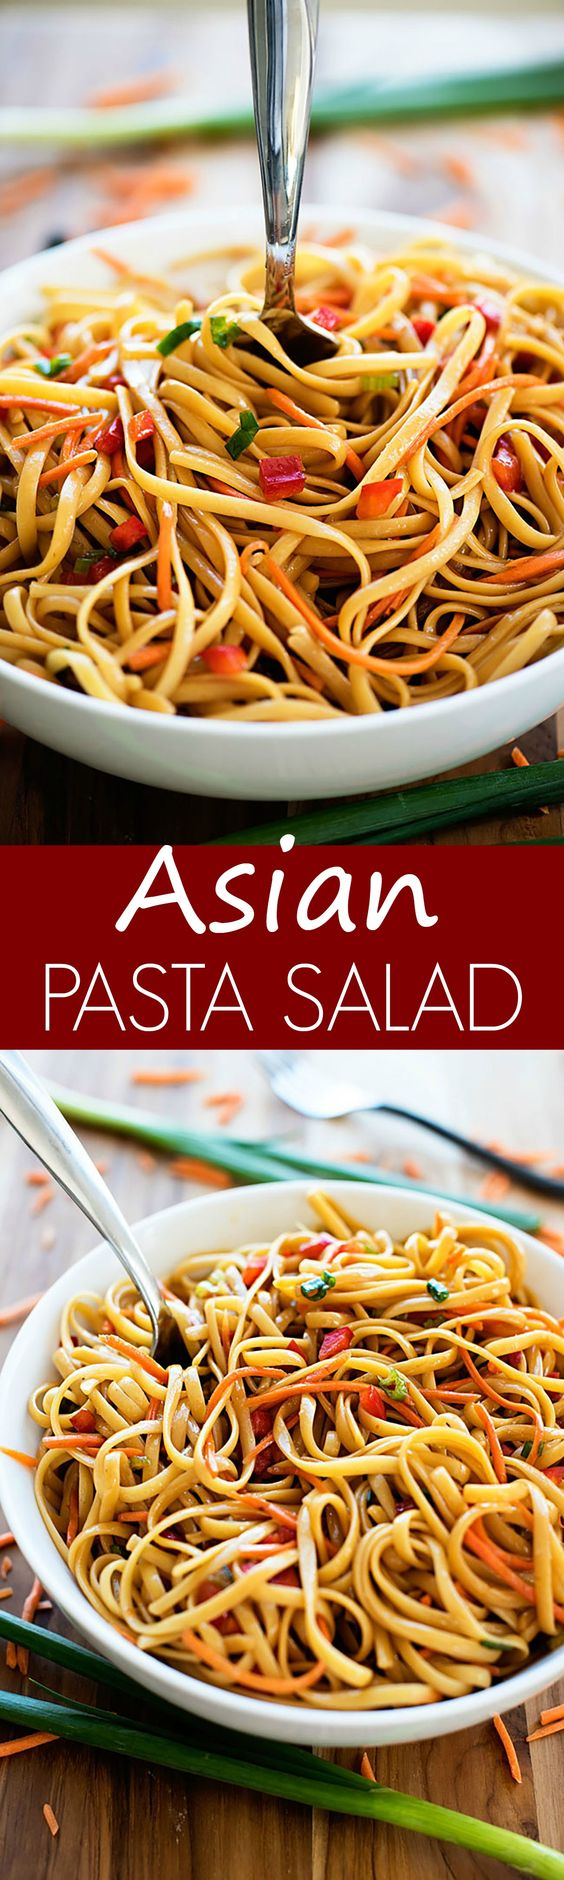 This cold pasta salad infused with Asian flavor will be the hit of any BBQ or picnic!